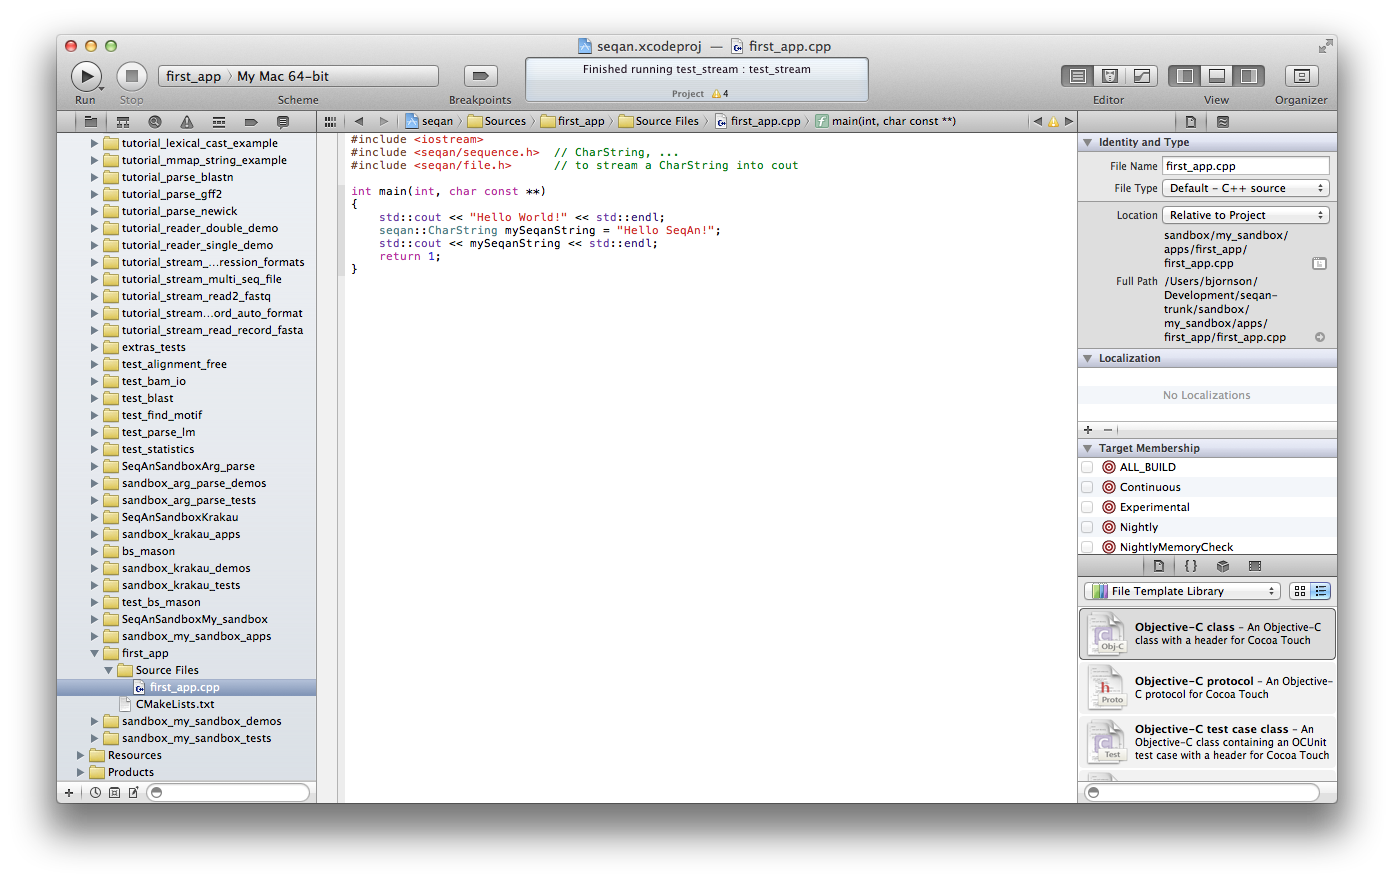 Getting Started With SeqAn On Mac OS X Using Xcode — SeqAn 1 4 2